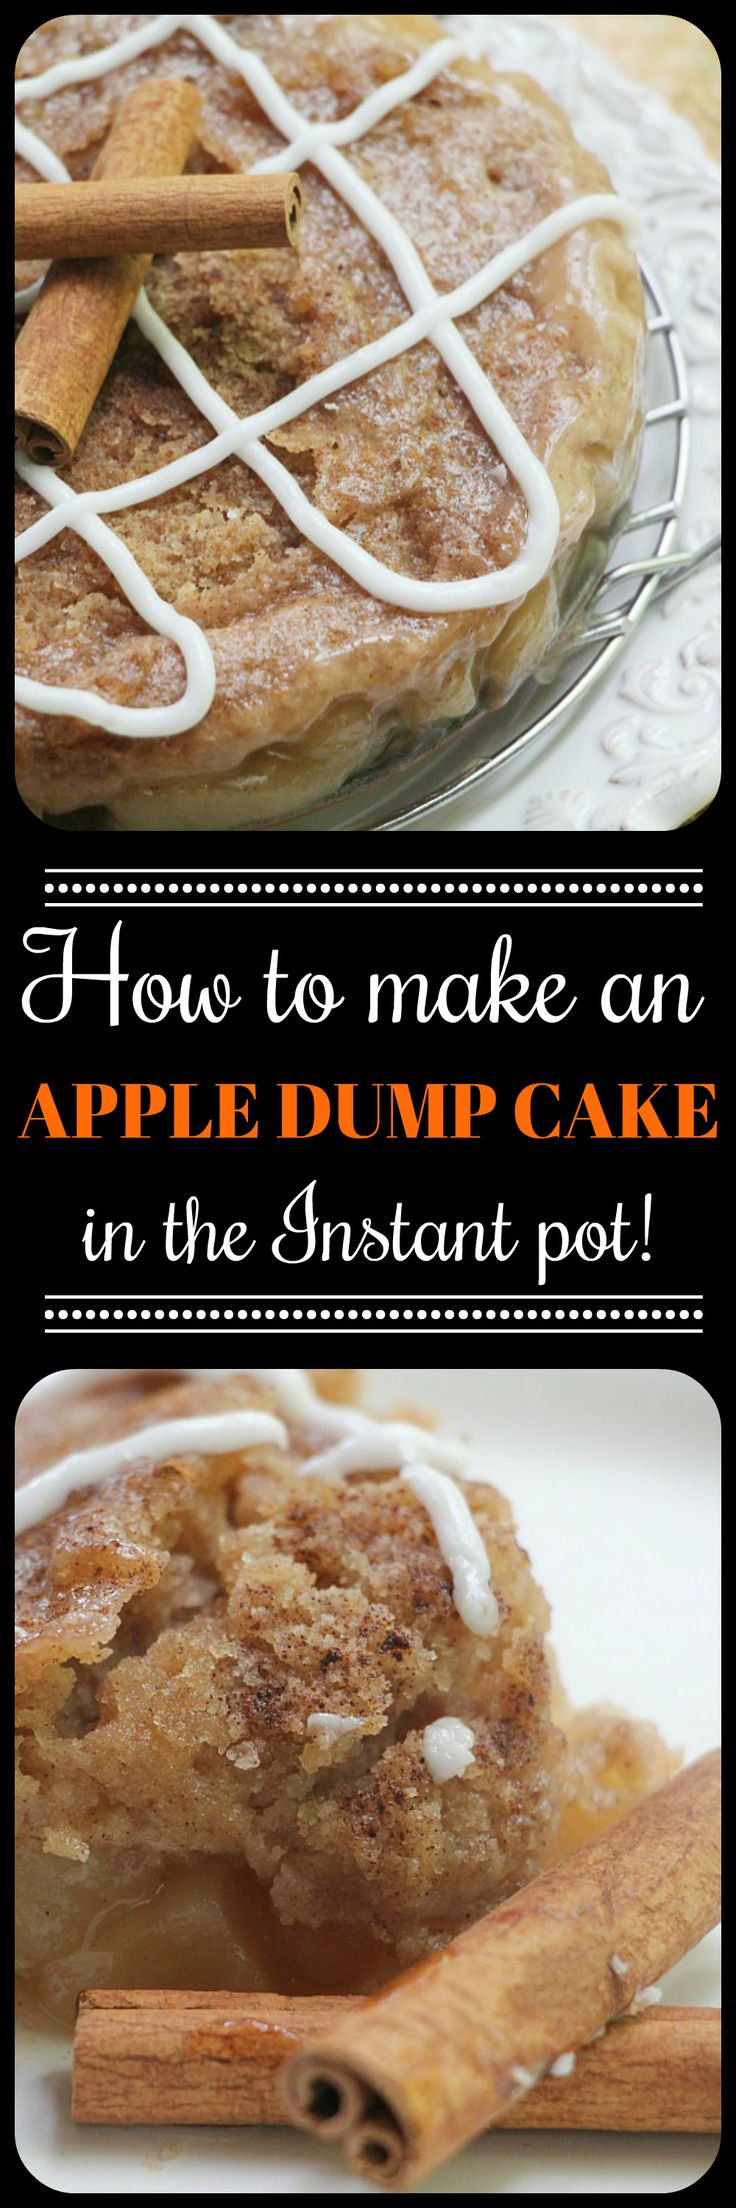 I've had my mind on this one for a while now. I just wasn't exactly sure how to do it. I shared a peach cobbler recipe I found in my 10 Amazing desserts compilation. It was questionable as to if it works because there is no water added to the recipe. The gal made in...Read More